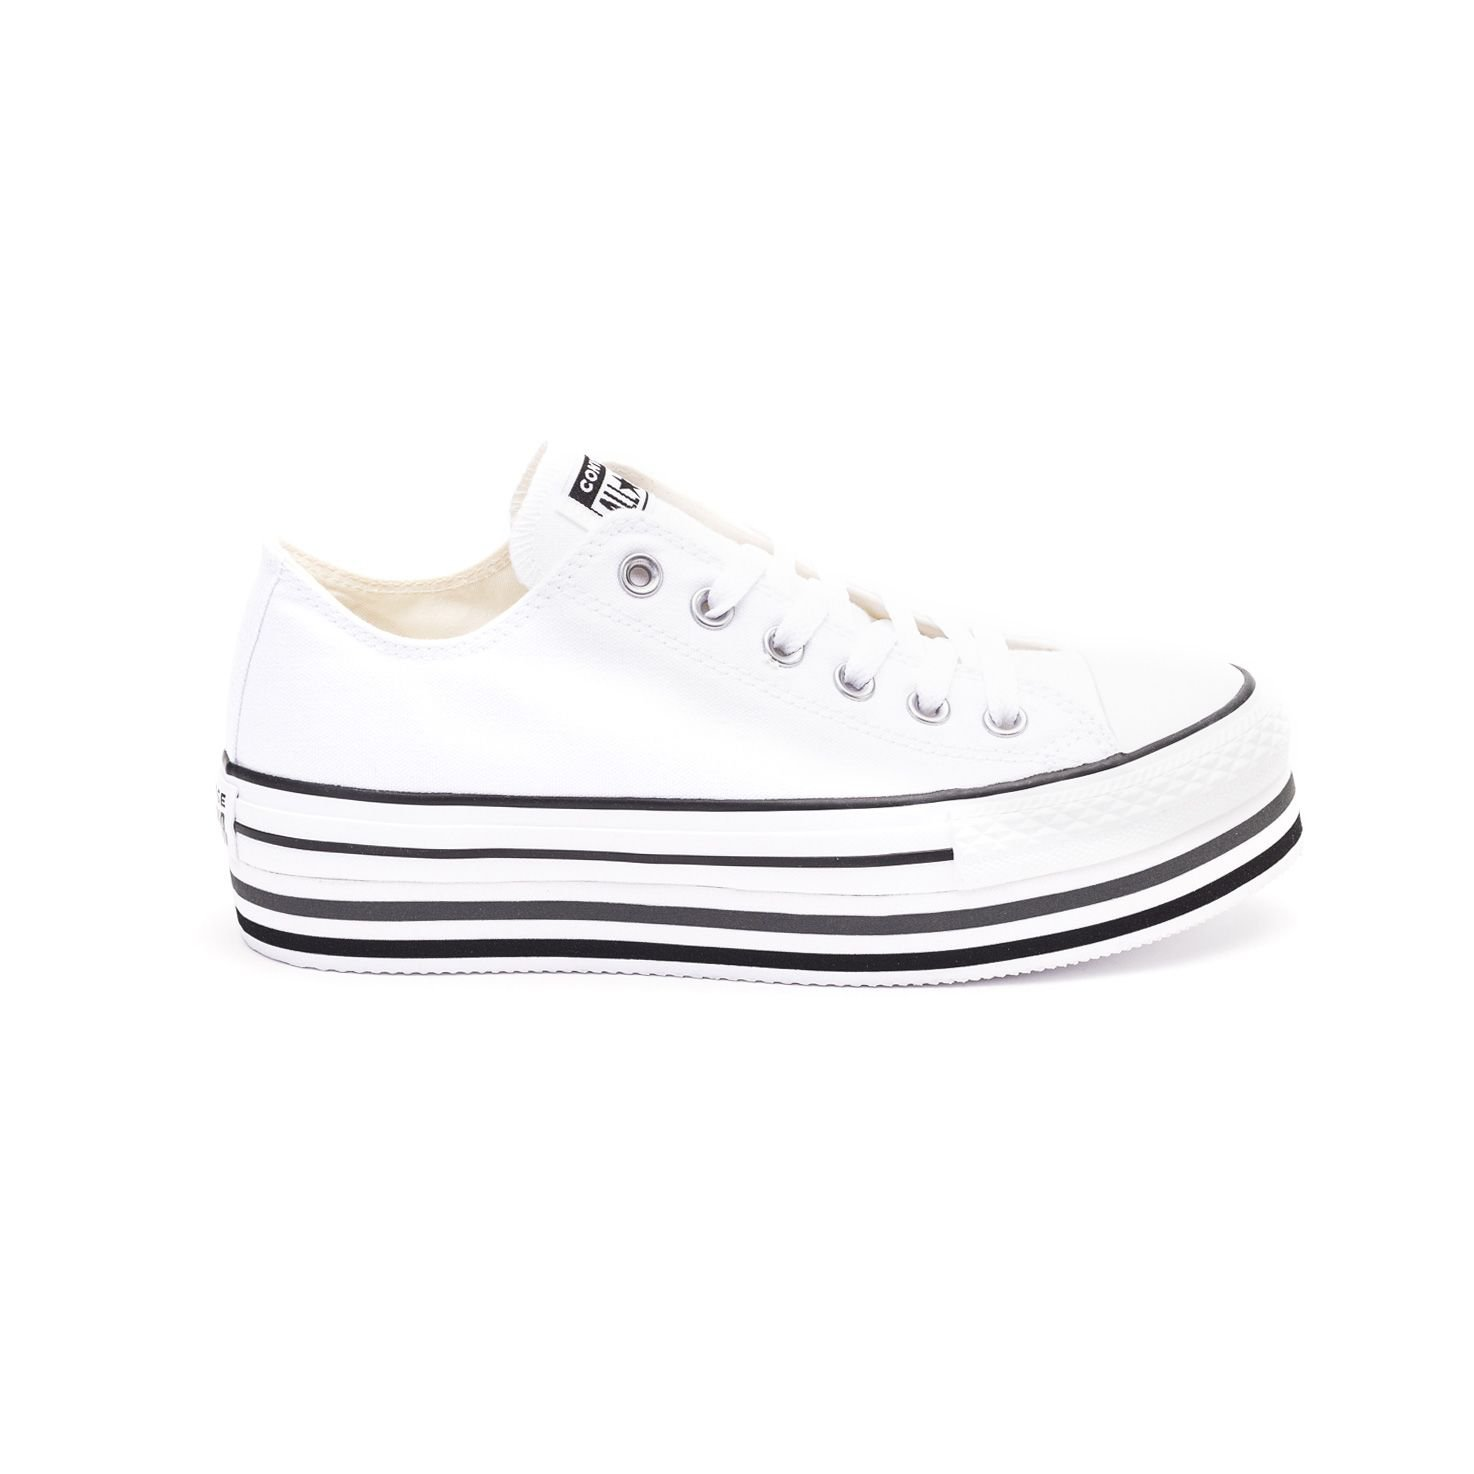 Converse Converse Chuck Taylor Platform Layer Ox Sneakers